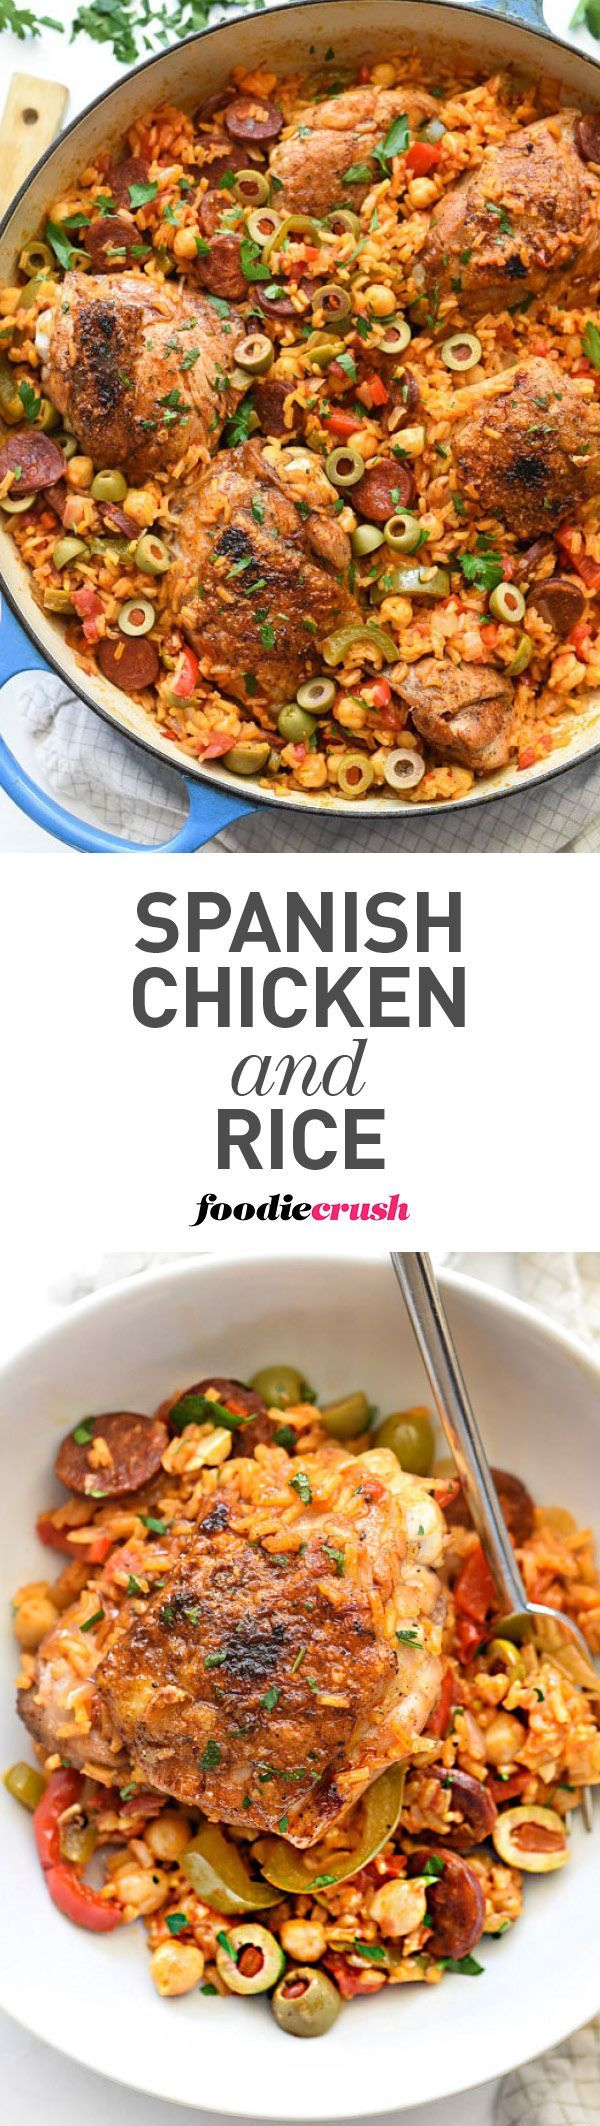 Chicken thighs are nestled in Spanish-flavored rice with Spanish chorizo, green olives, and garbanzo beans for the ultimate one-pot meal | foodiecrush.com (Bake Rice And Beans)